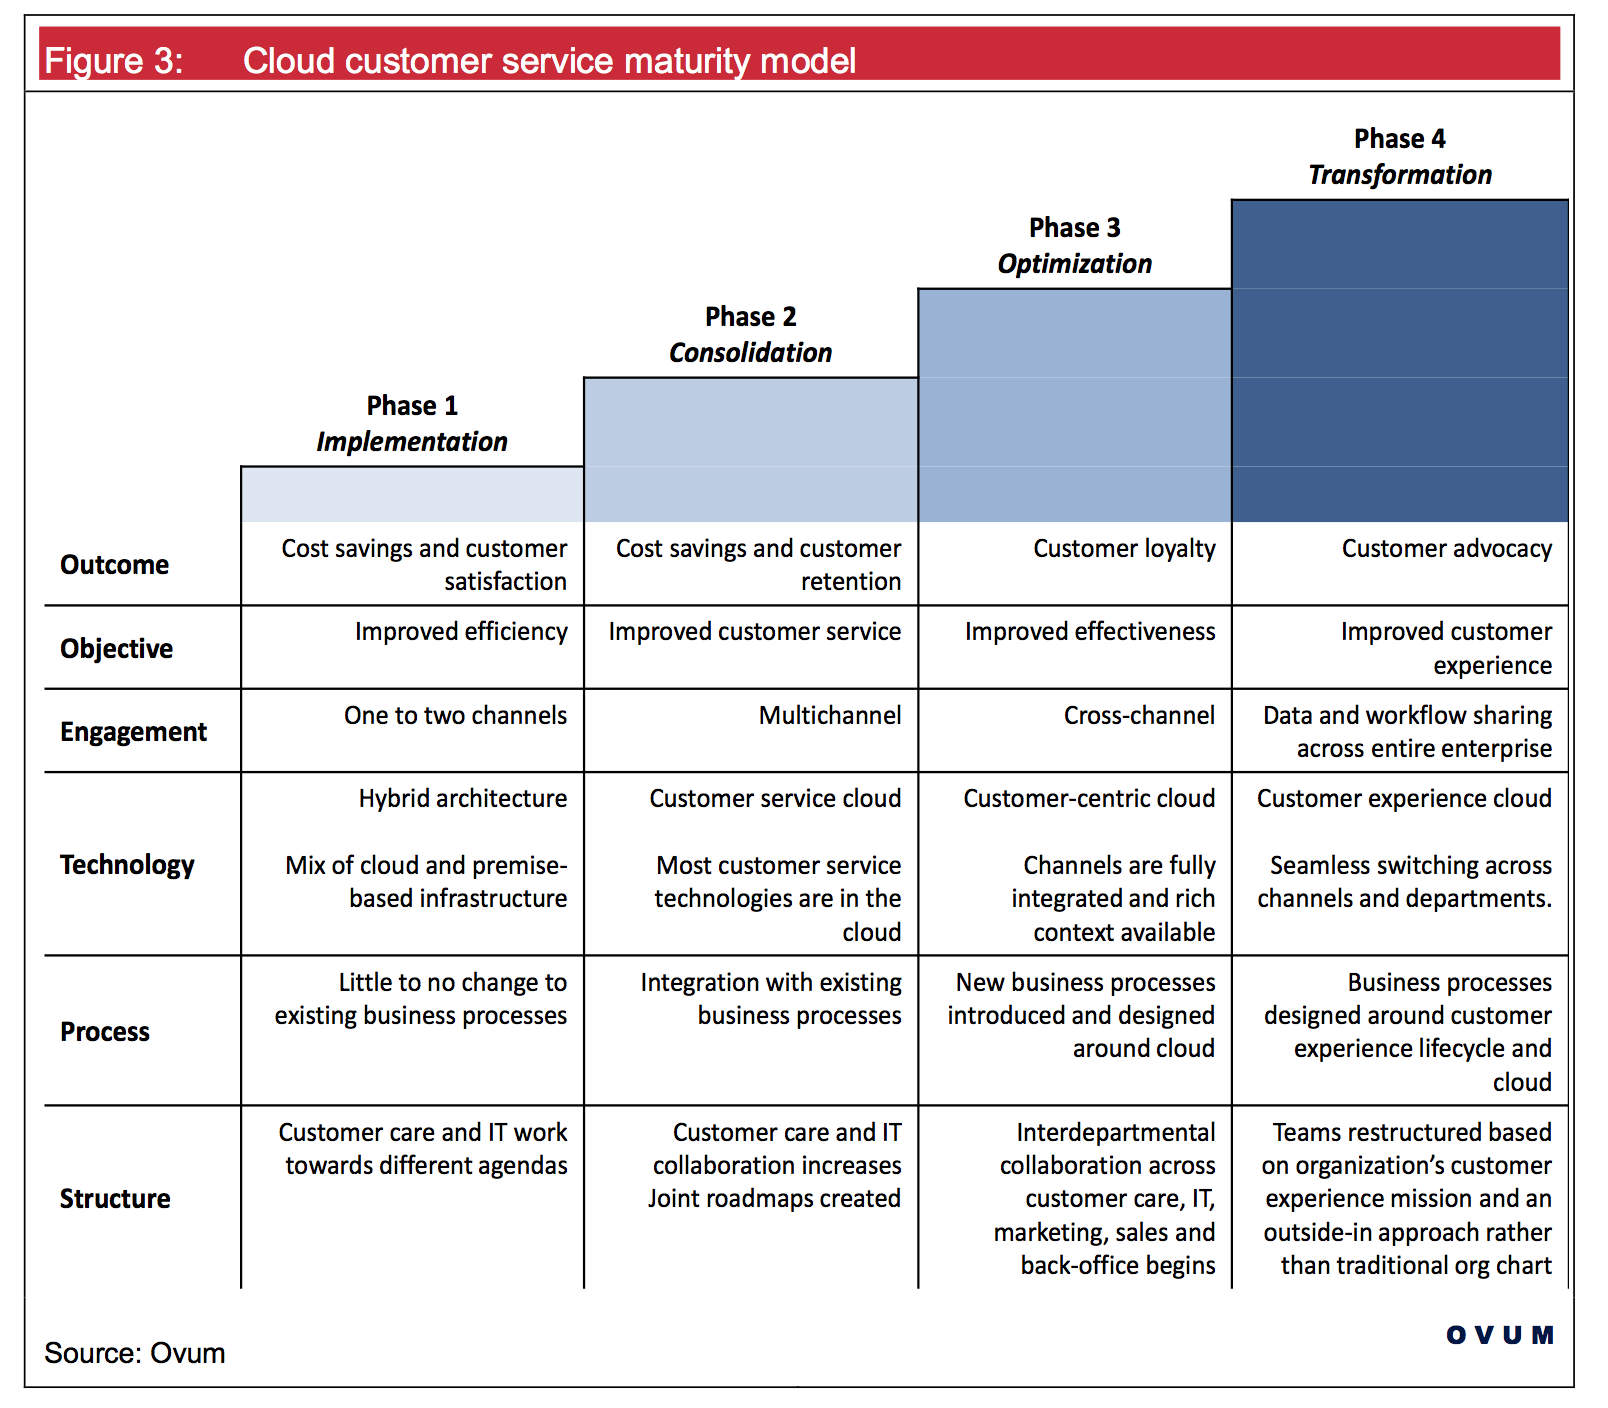 mention about capability maturity model